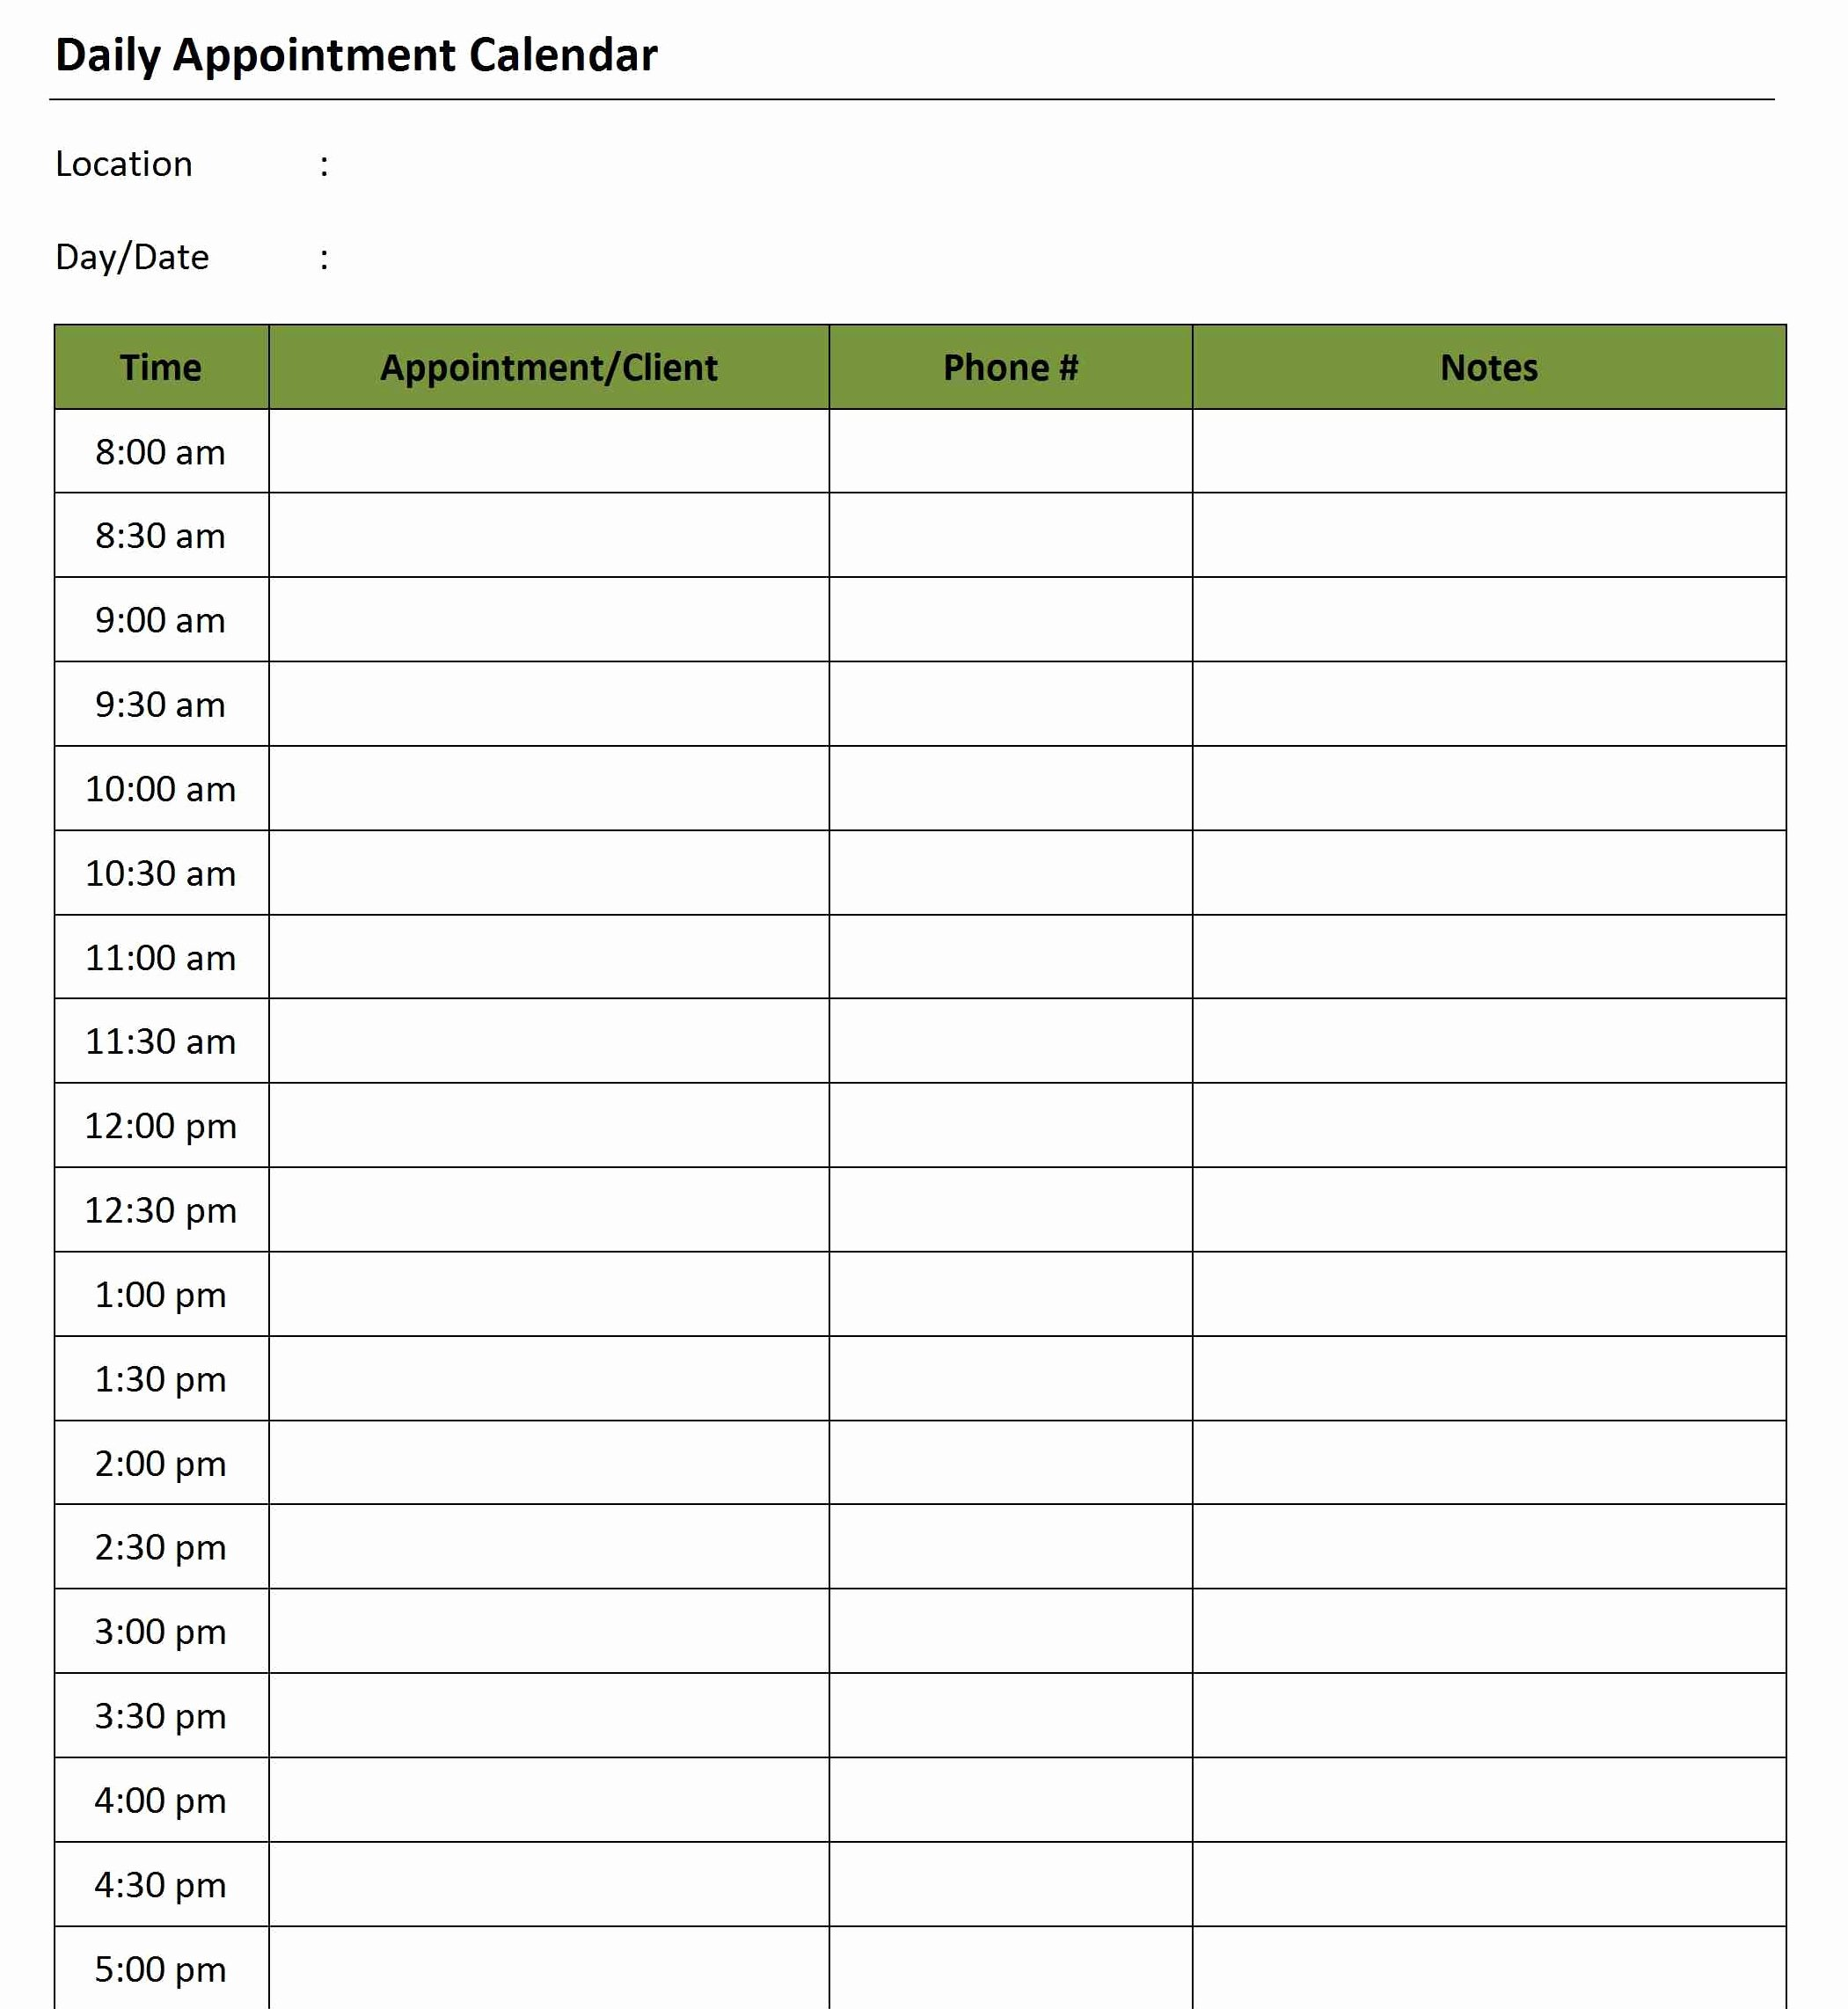 Free Appointment Calendar Template New Daily Appointment Calendar